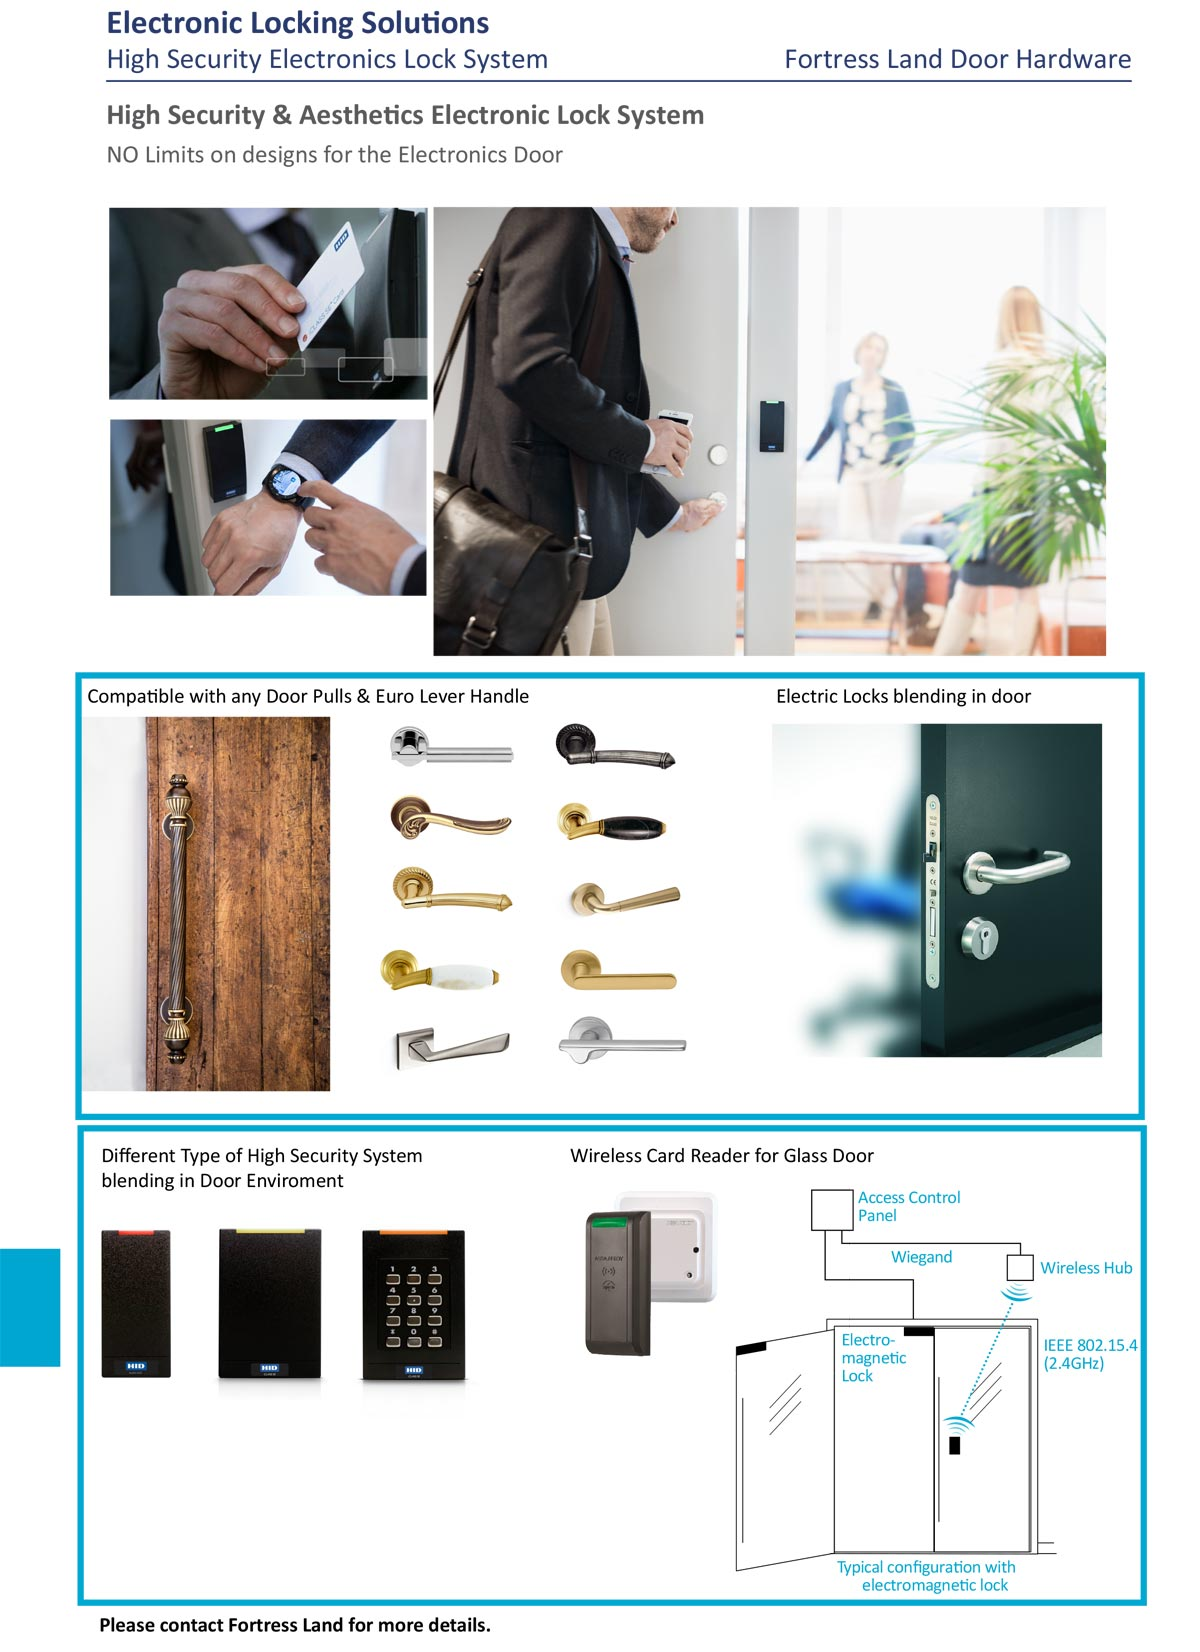 high security door access control system, high secuirty door system, mobile access door, motor lock, assa abloy electric lock, Fortress Land Security Company Yangon, Myanmar